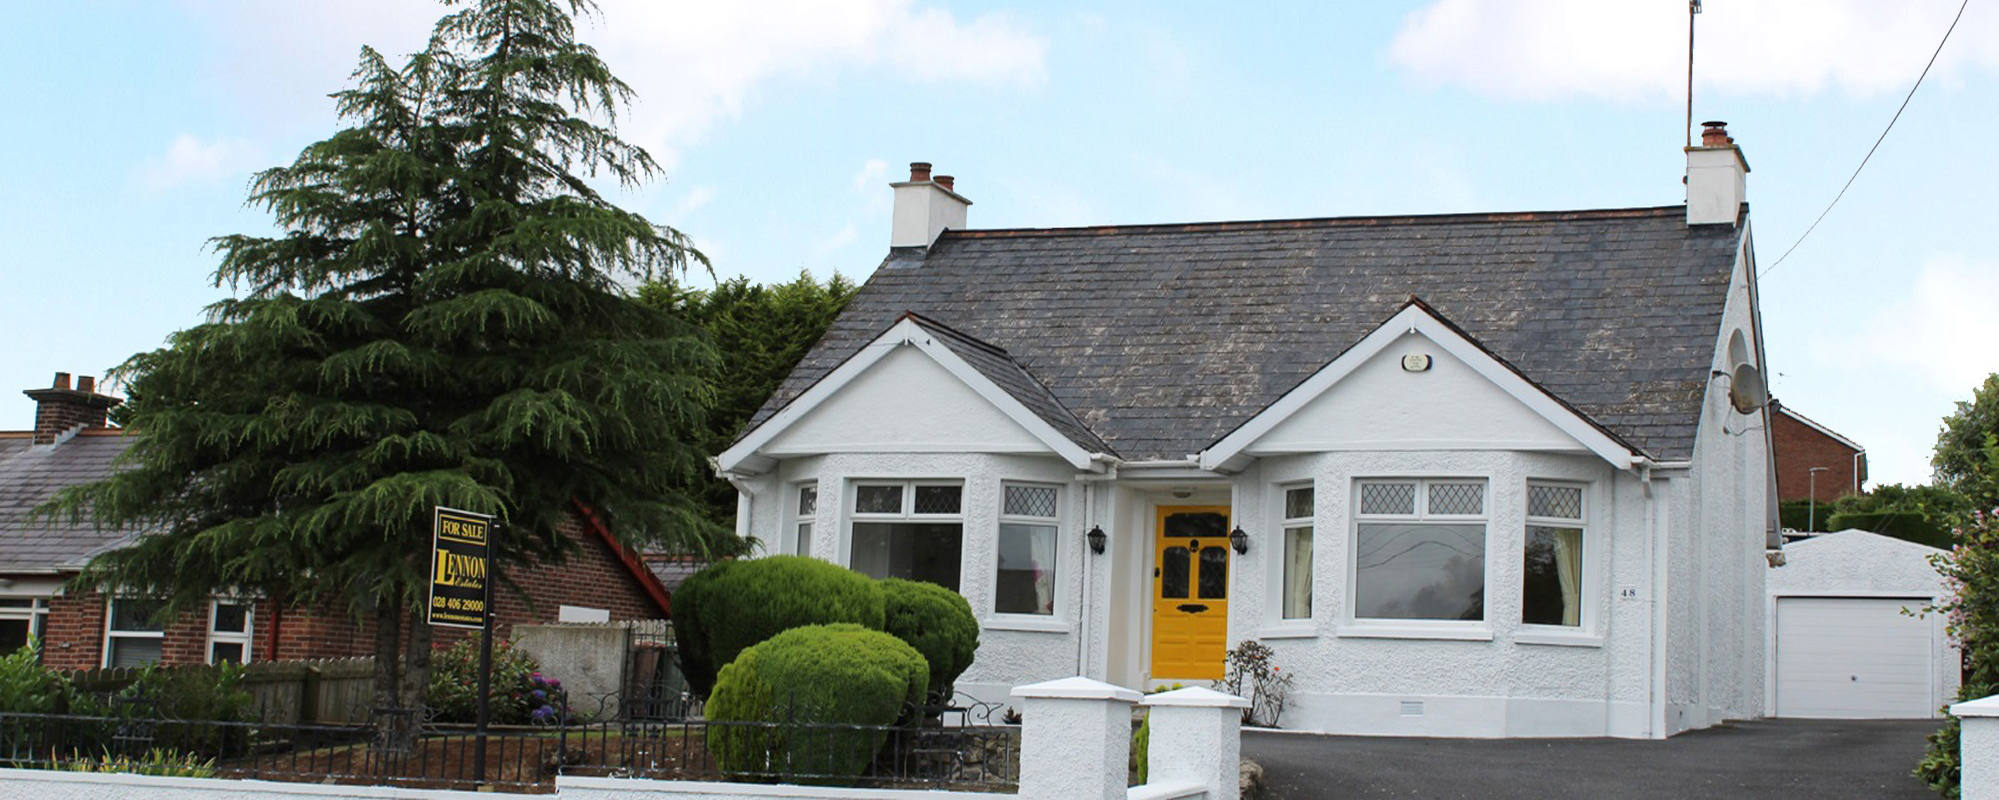 48 Castlewellan Road, Banbridge, BT32 4JF